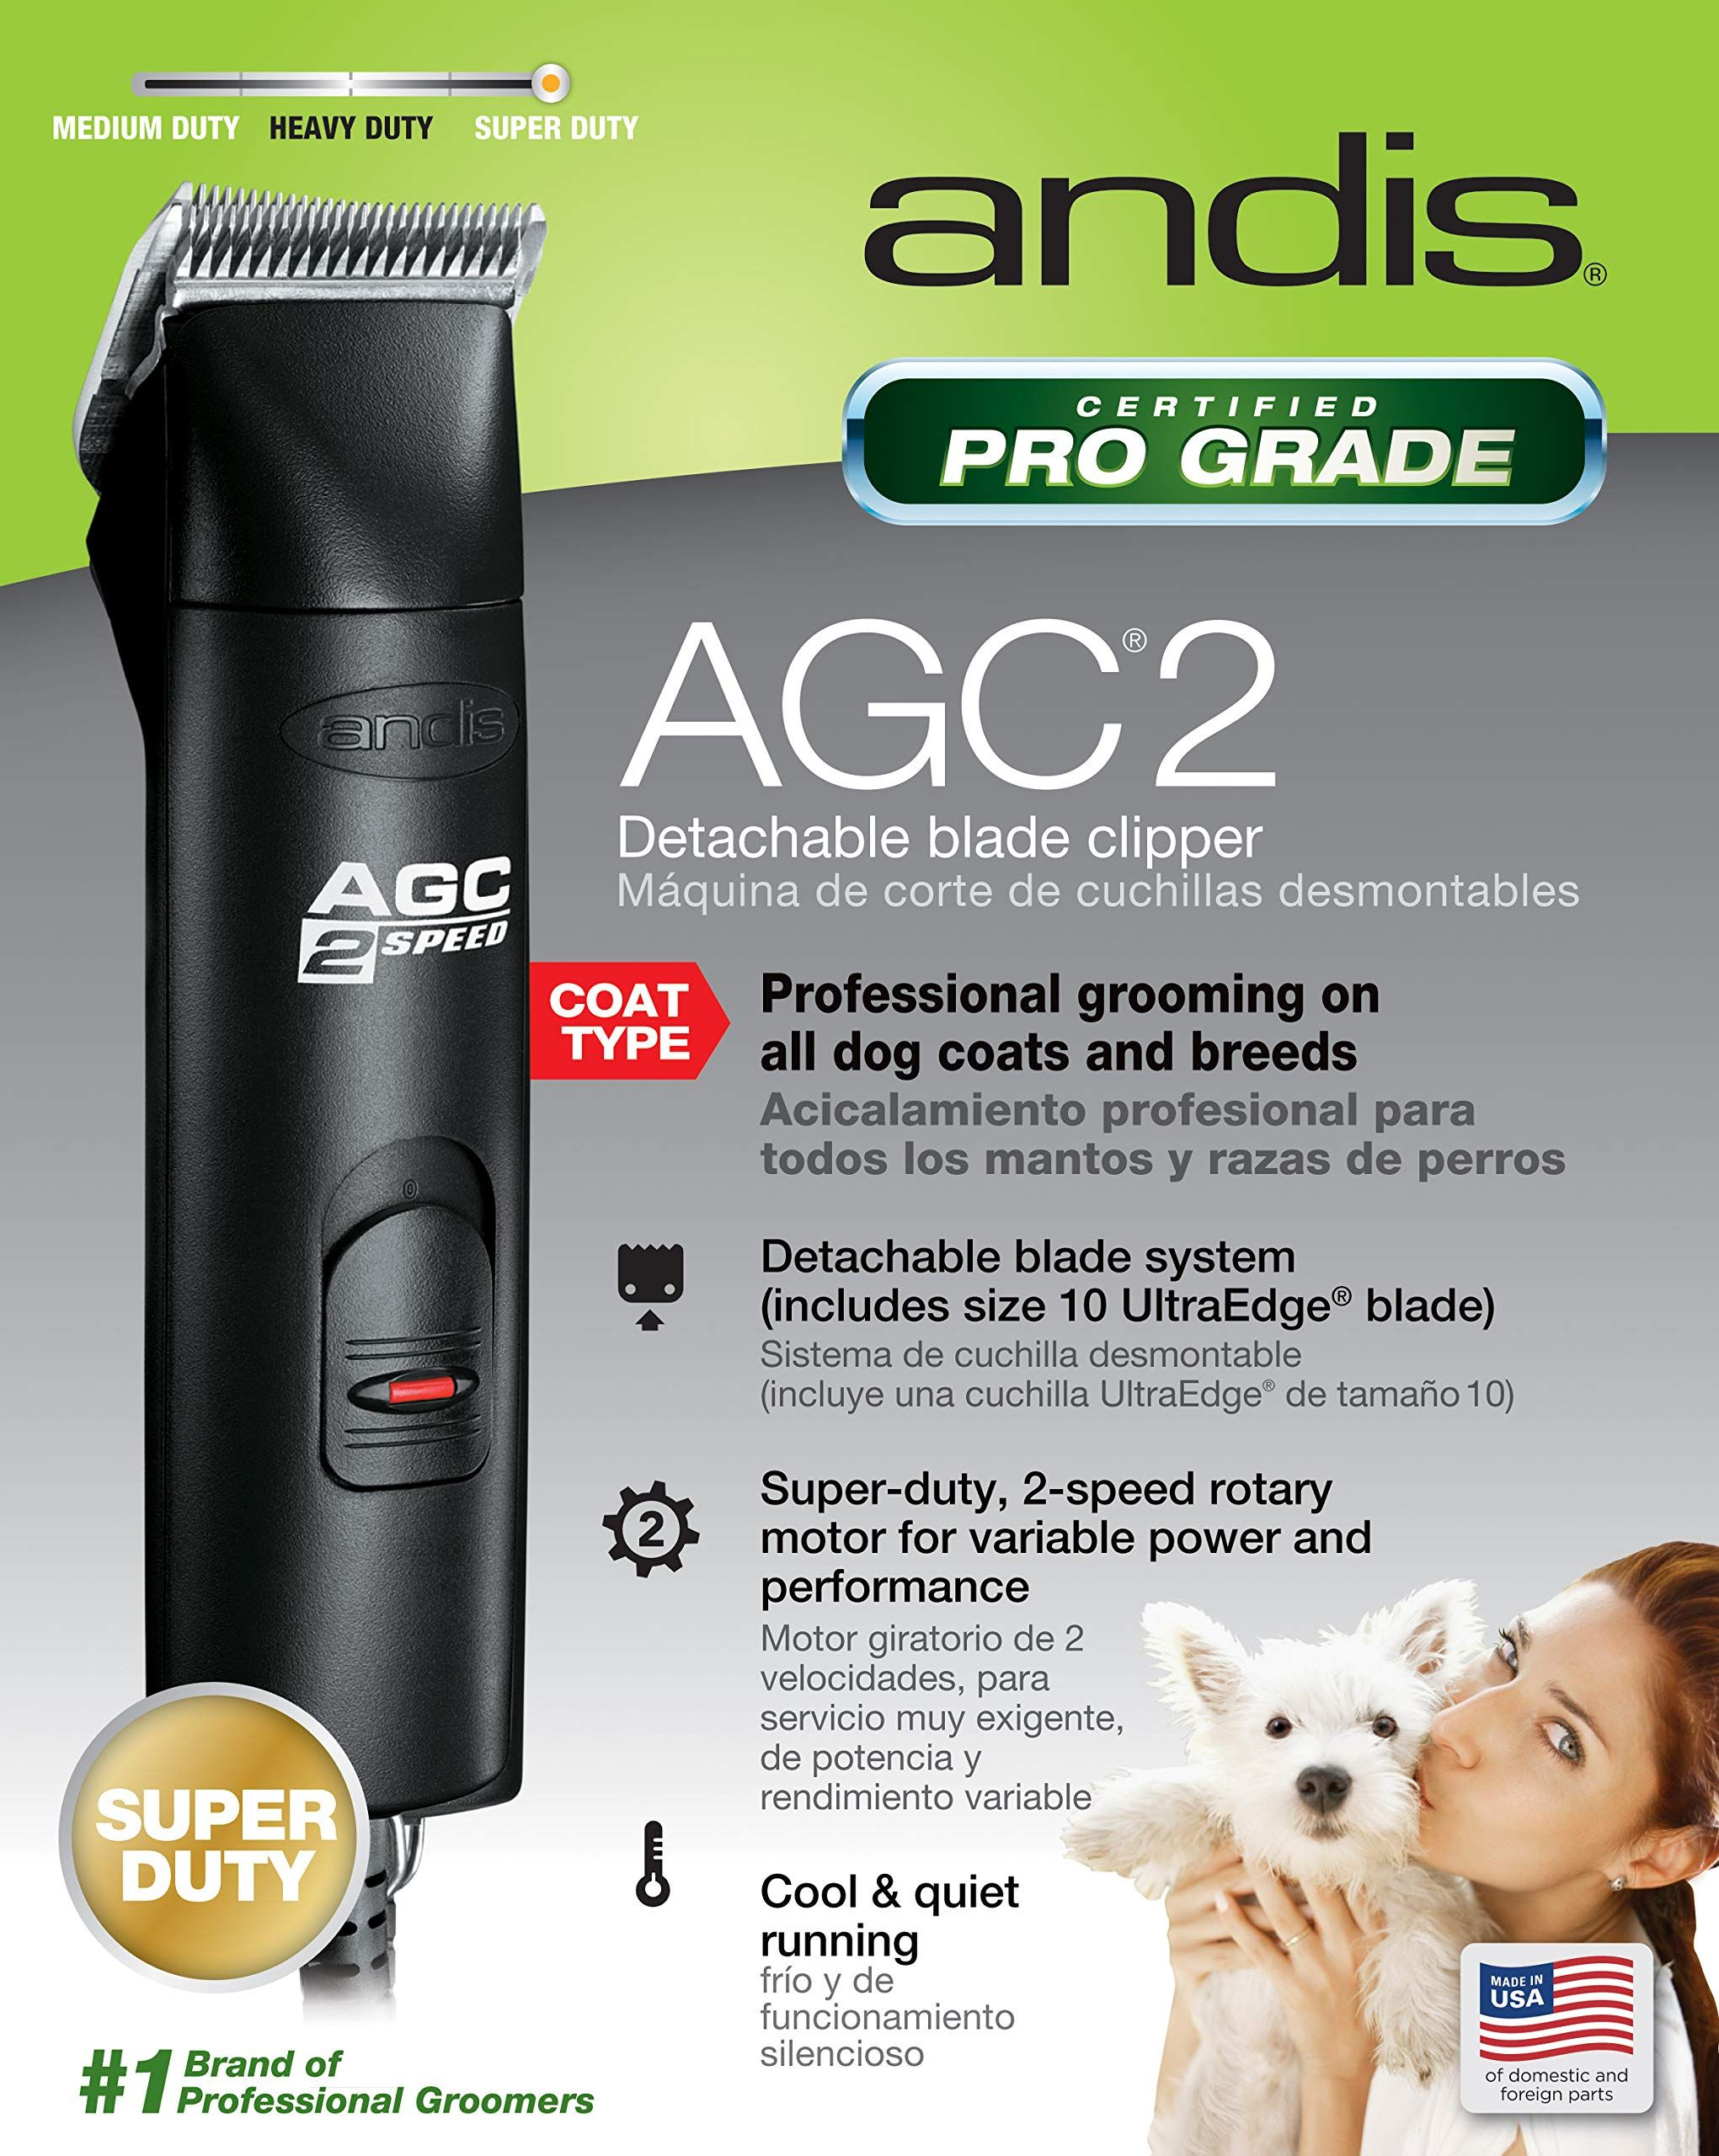 Andis Proclip Agc2 2 Speed Detachable Blade Clipper Professional